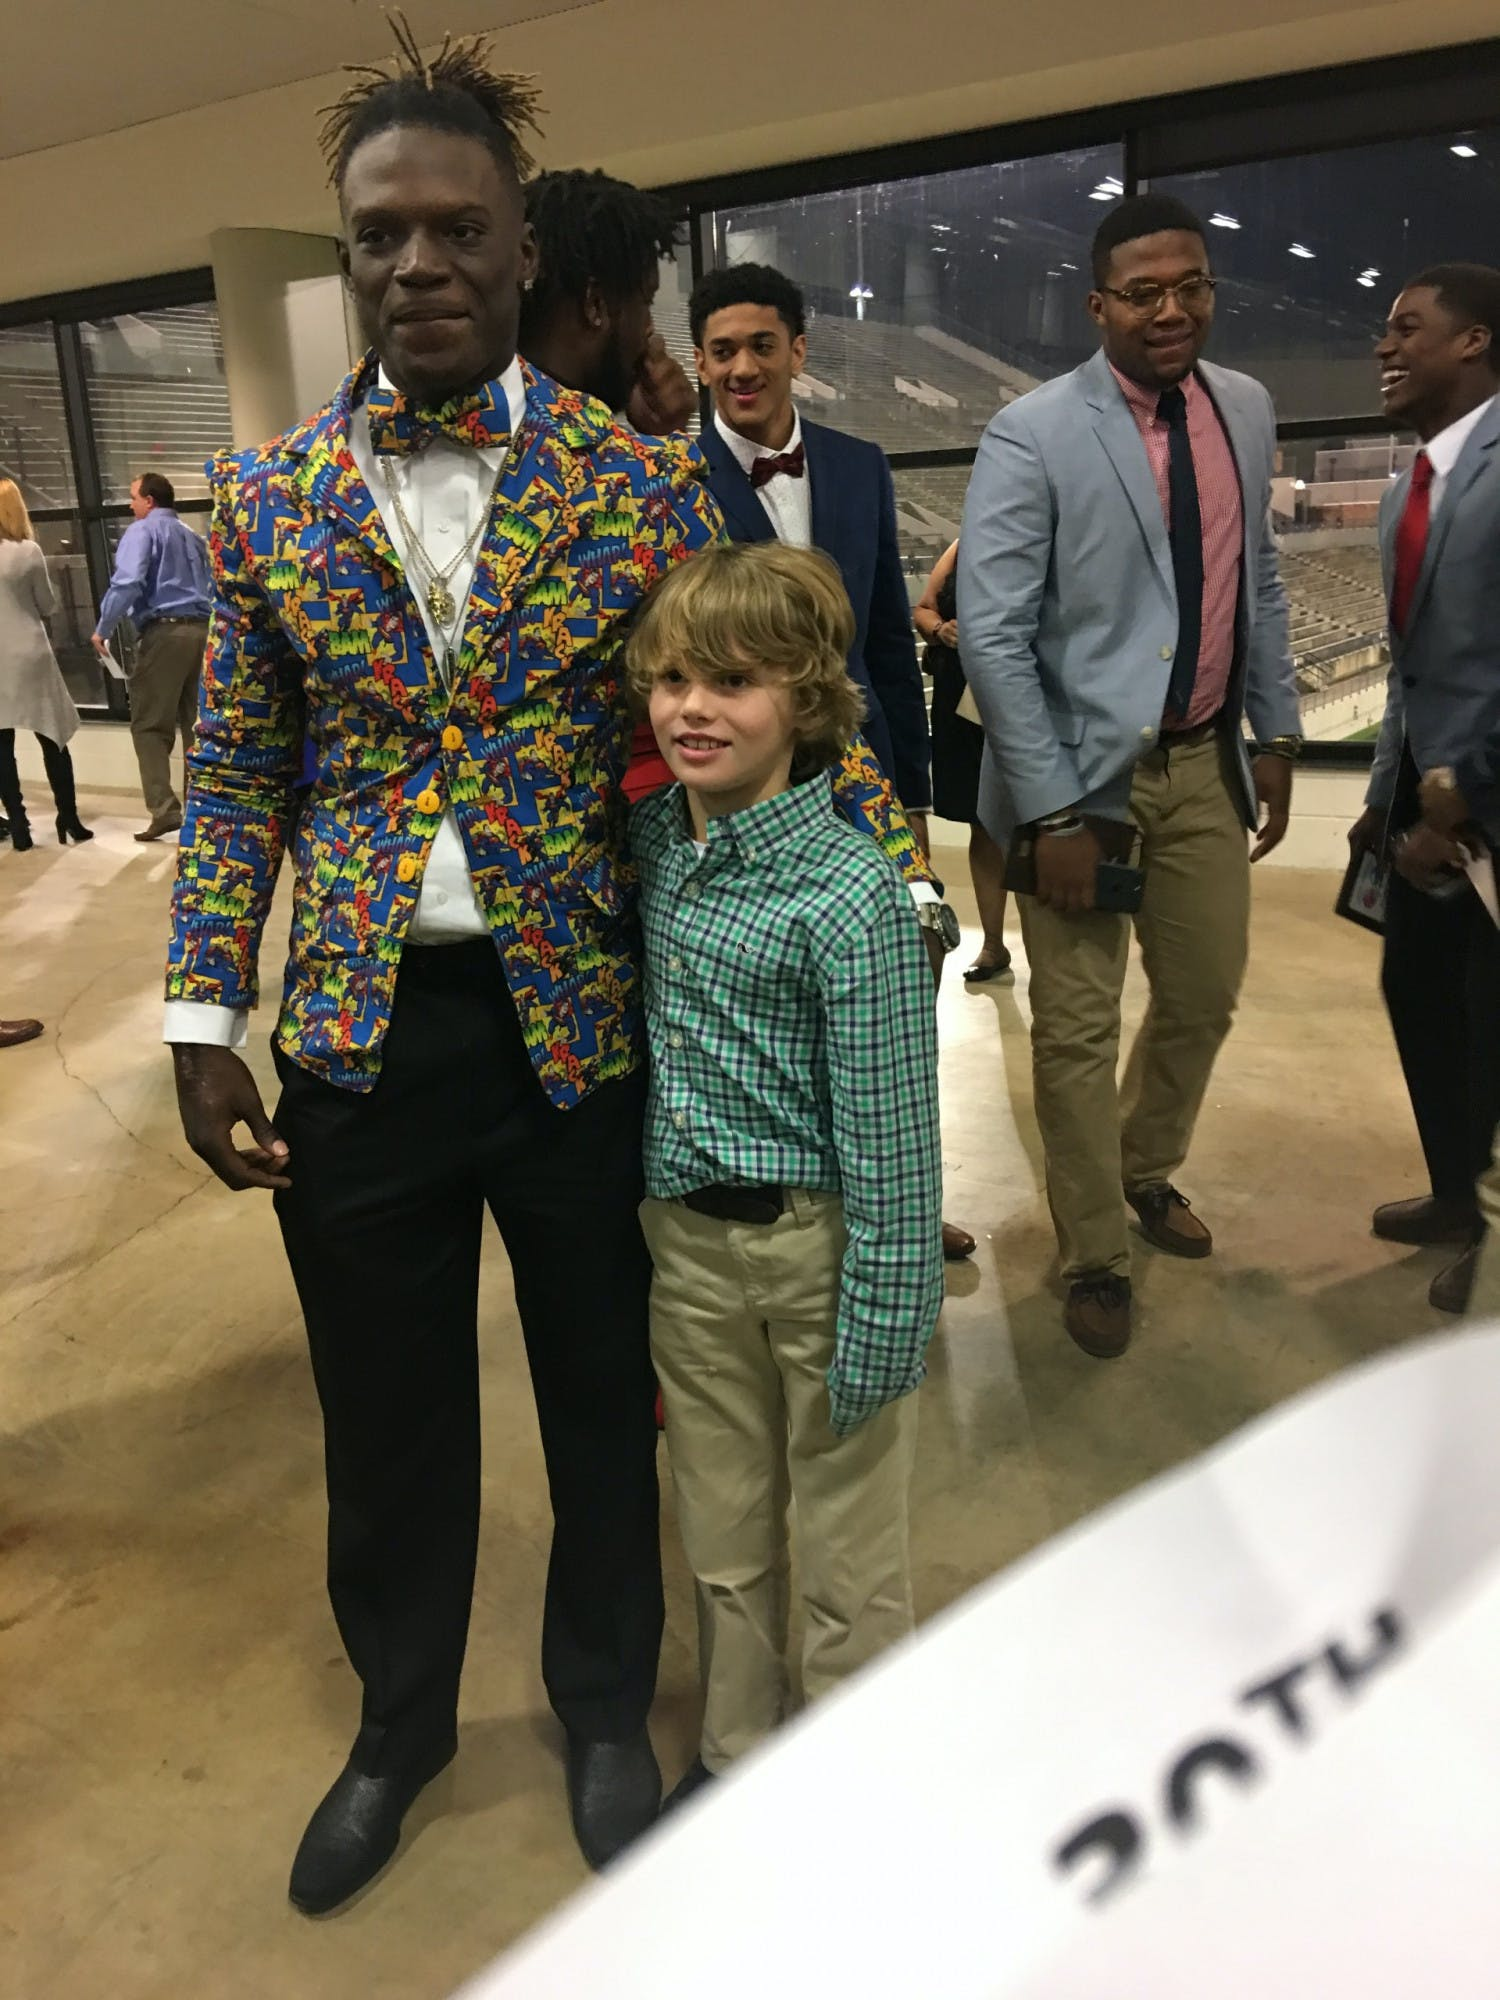 Kadarius Toney, superman suit